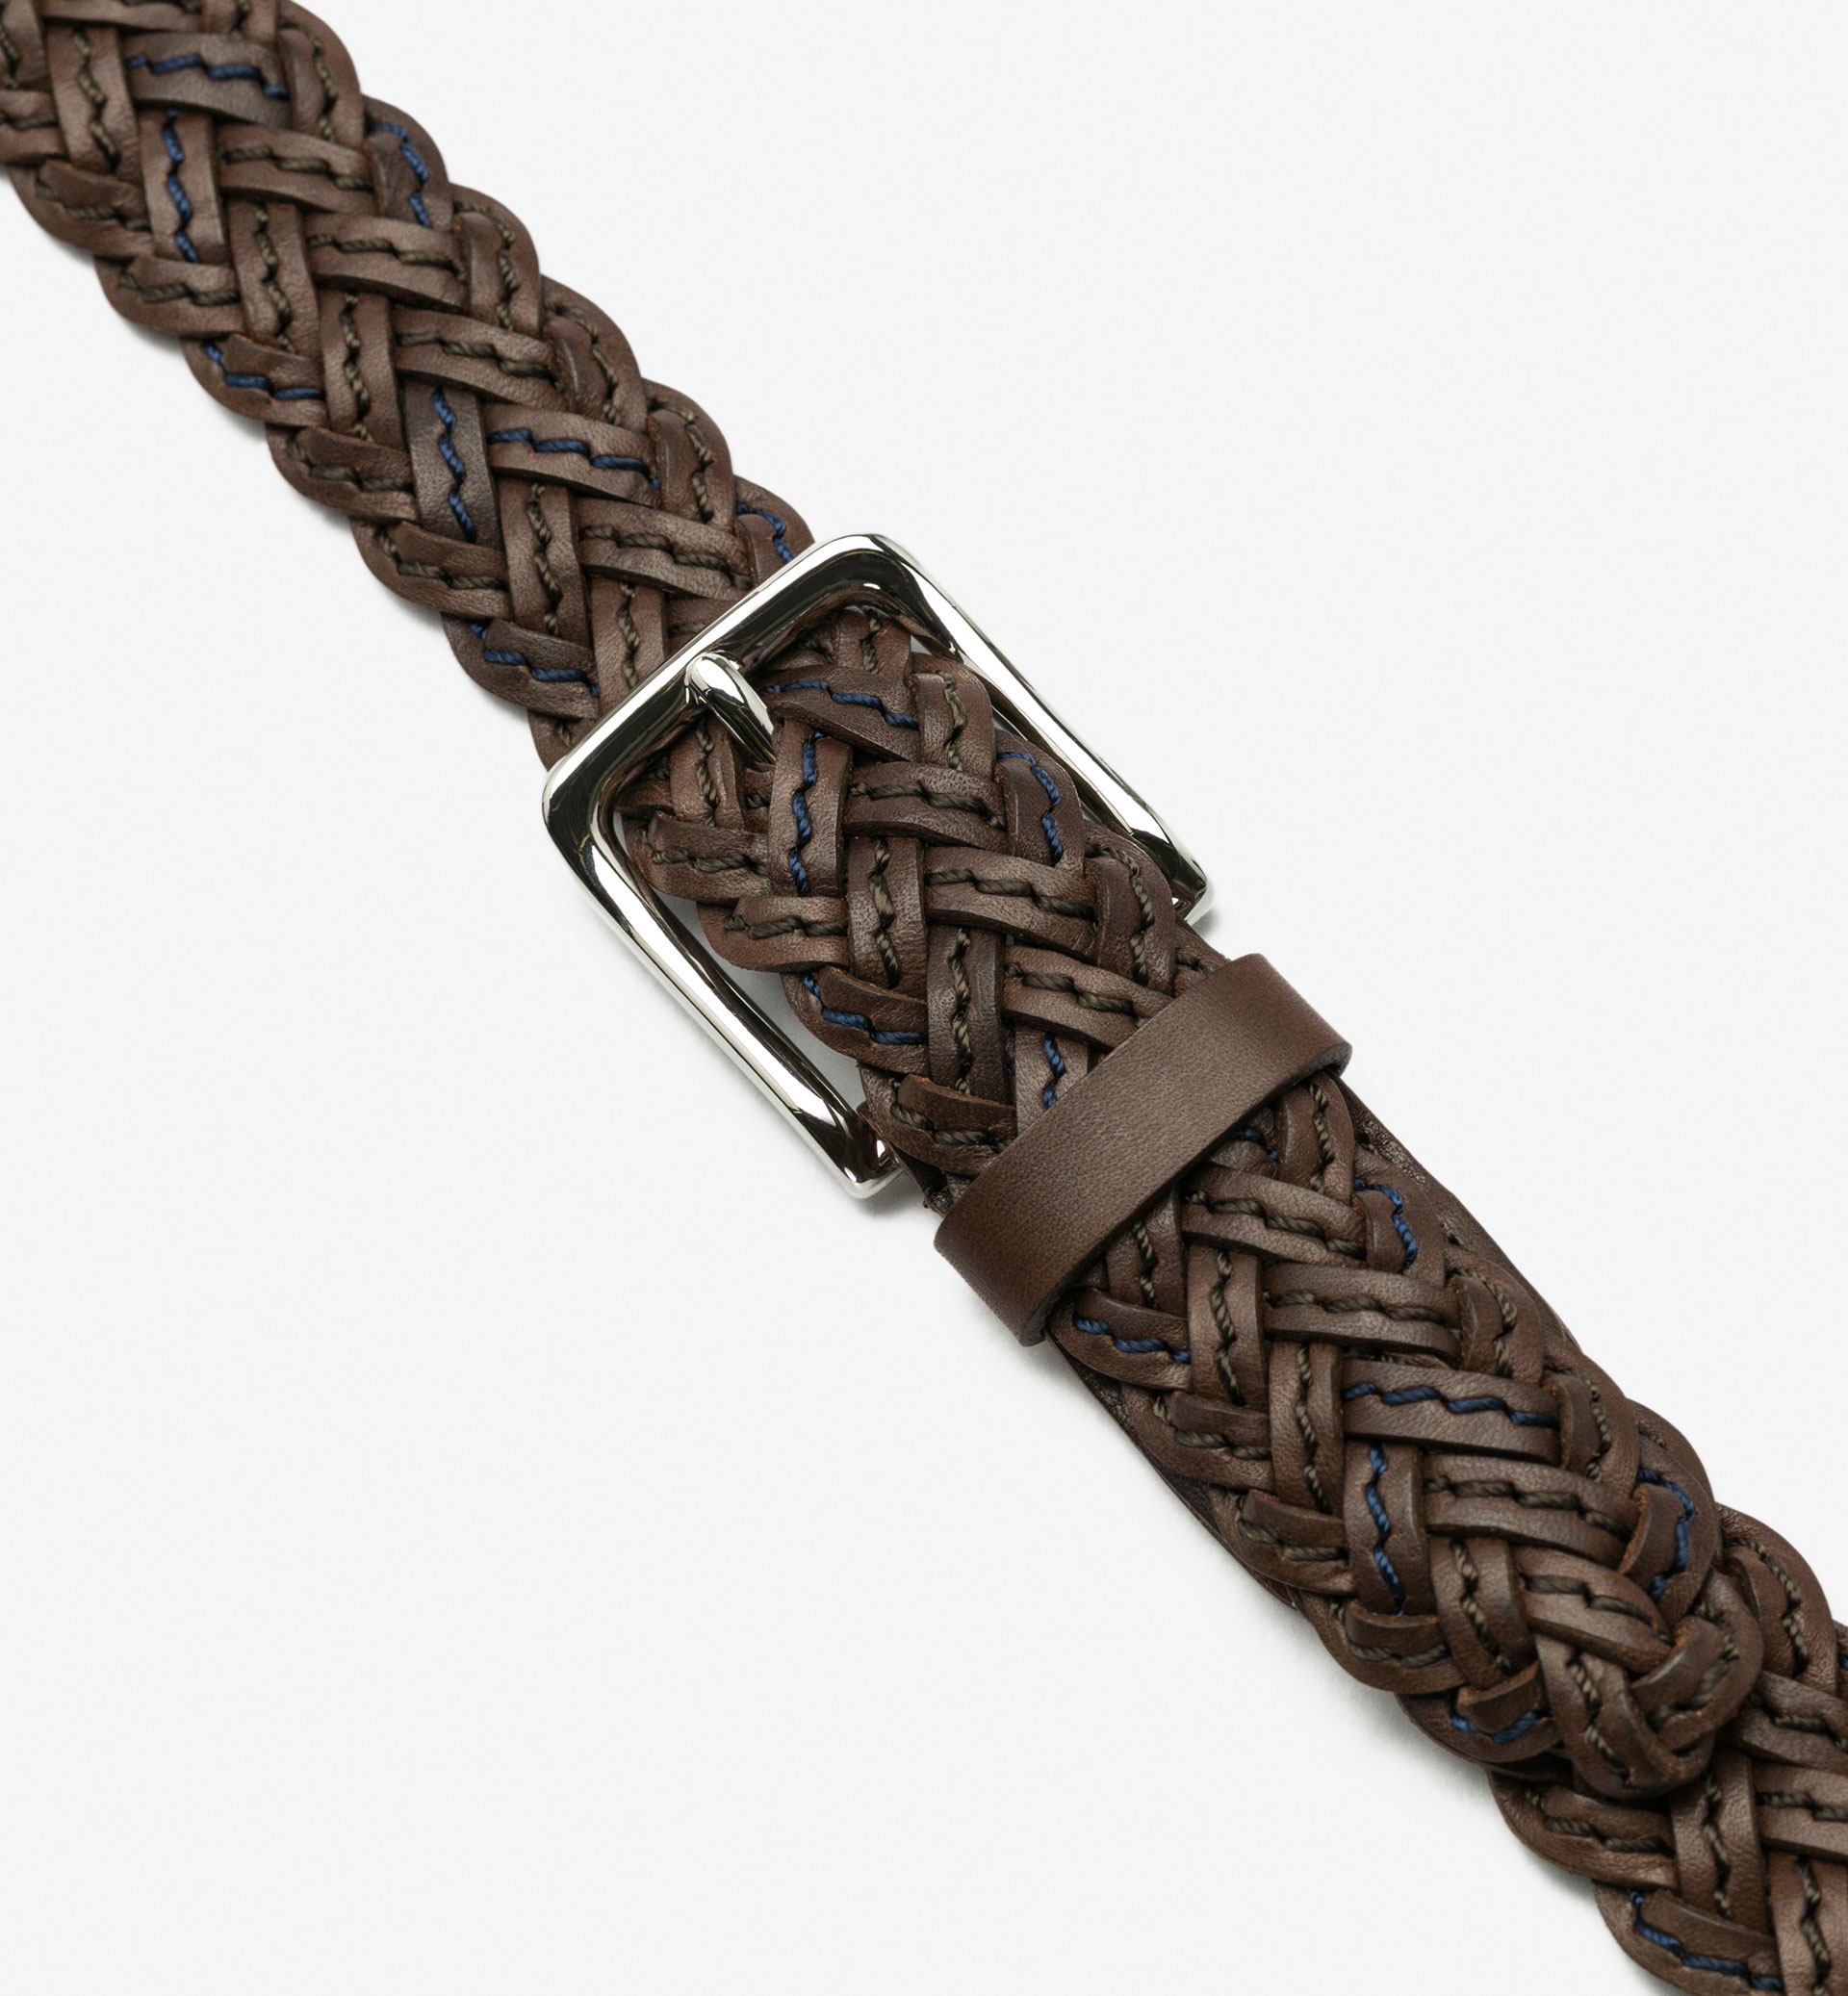 BRAIDED BELT WITH TOPSTITCHING DETAIL